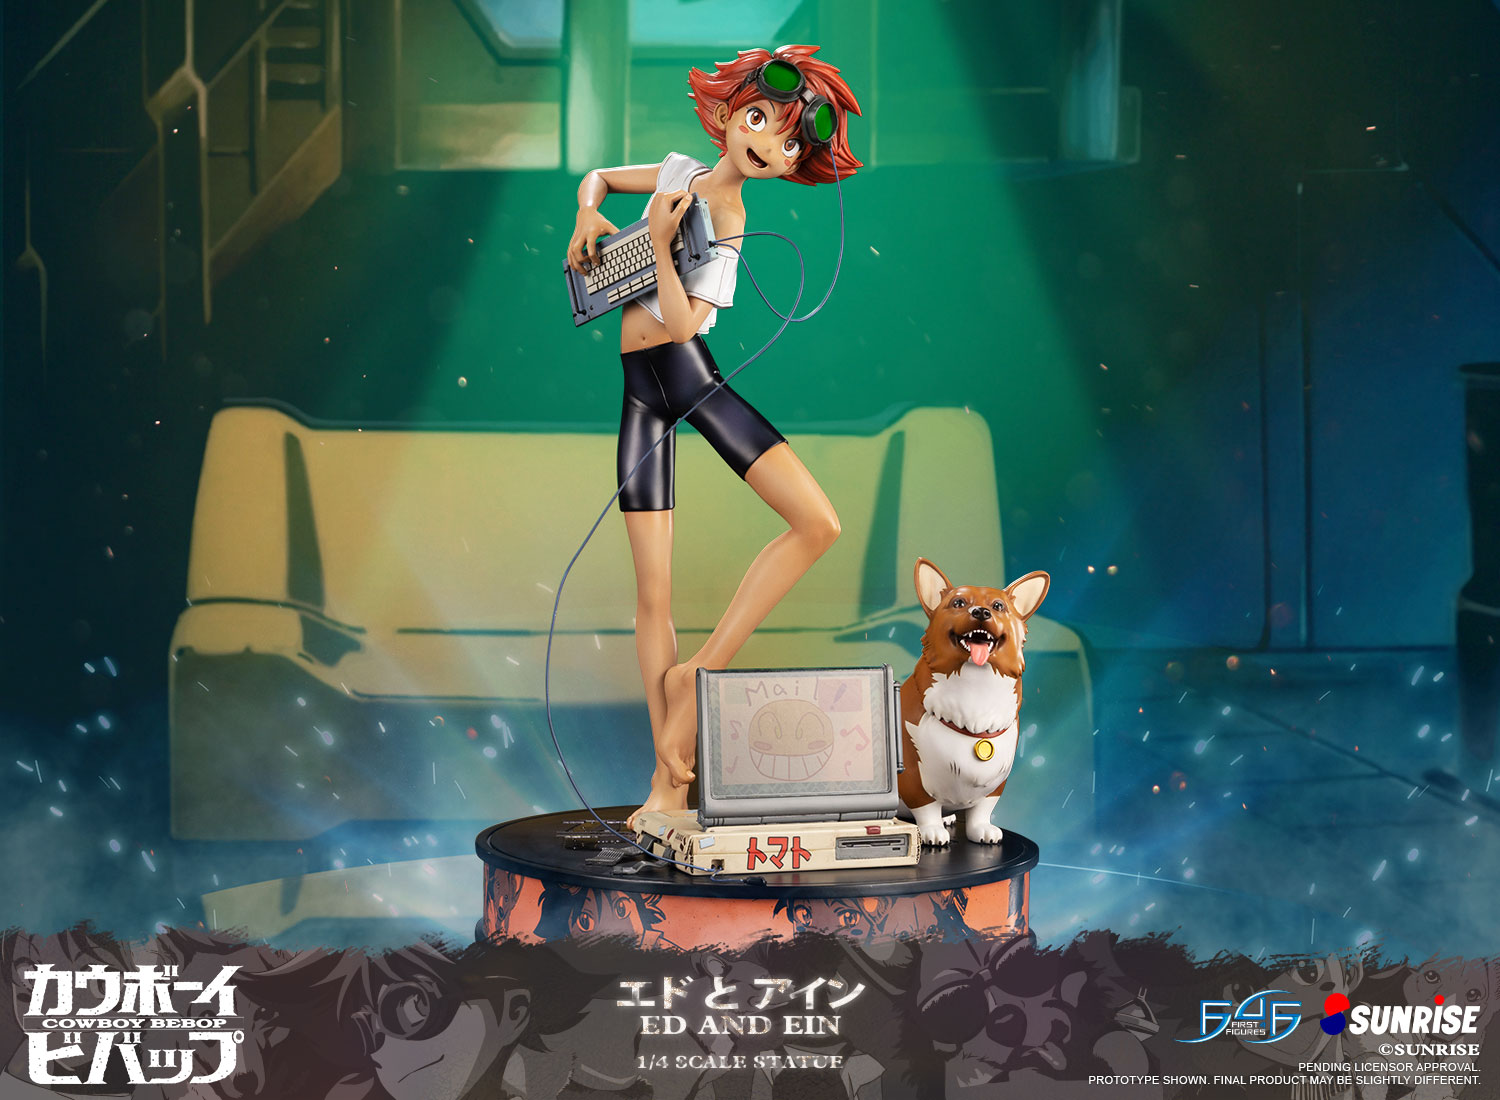 Ed and Ein (Standard Edition)